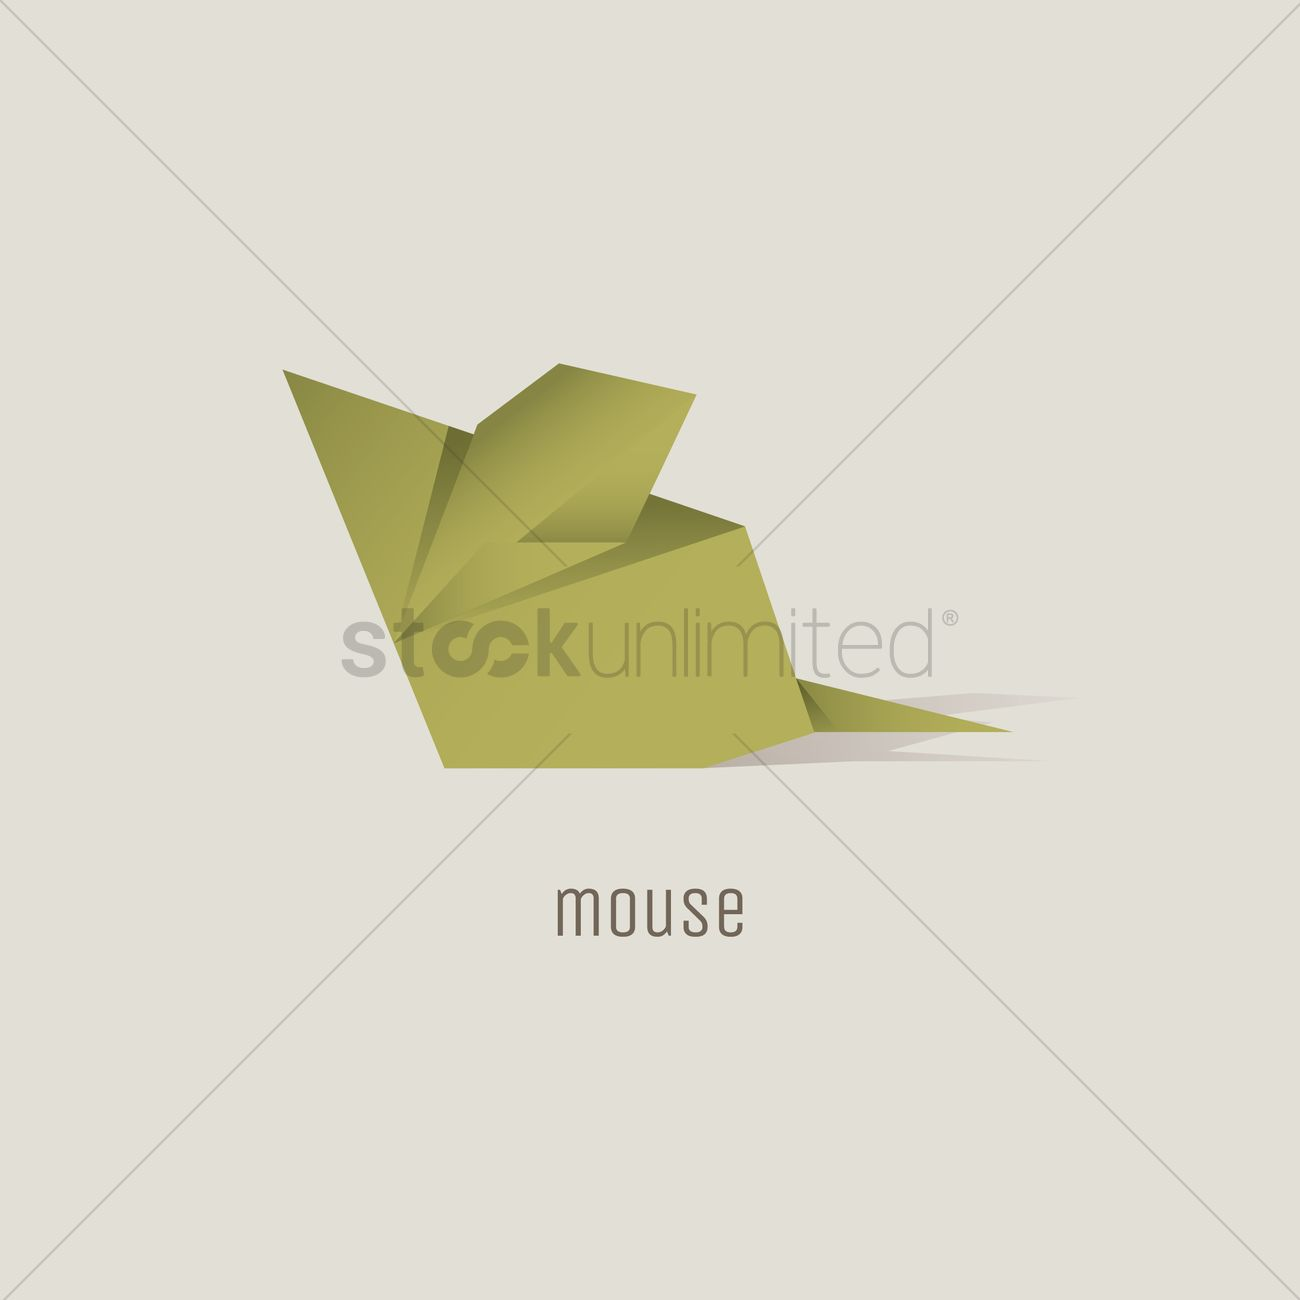 Origami Mouse Vector Image 1817848 Stockunlimited